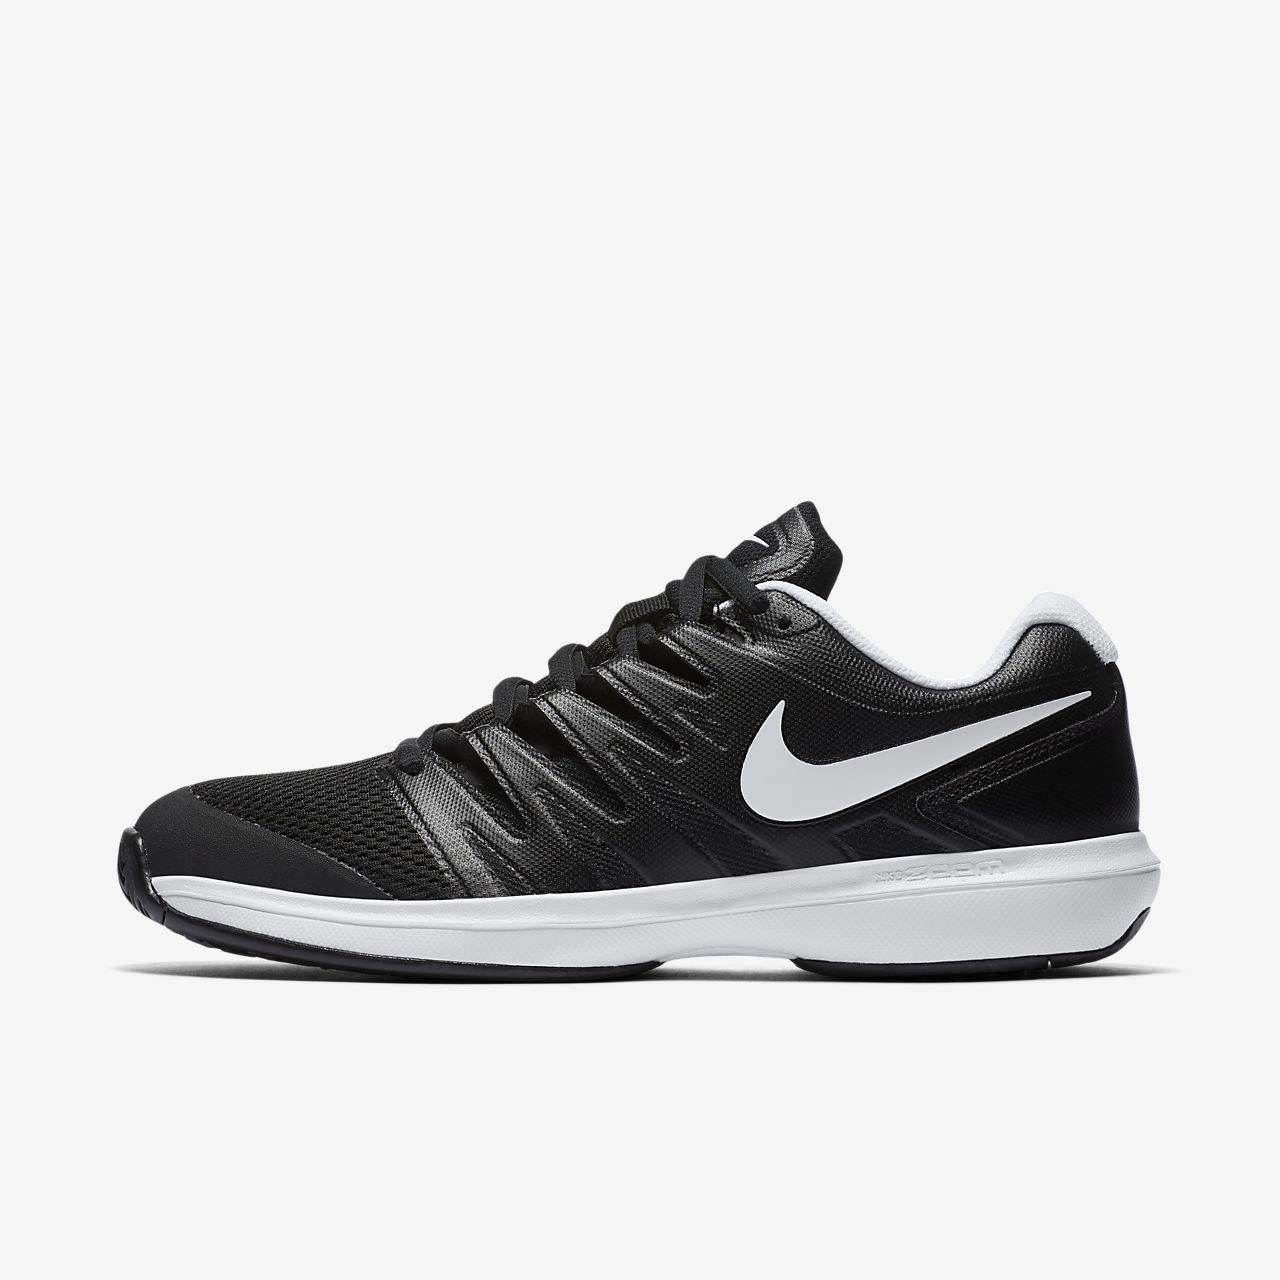 NikeCourt Air Zoom Prestige Men s Hard Court Tennis Shoe. Nike.com SA 72c363bc9